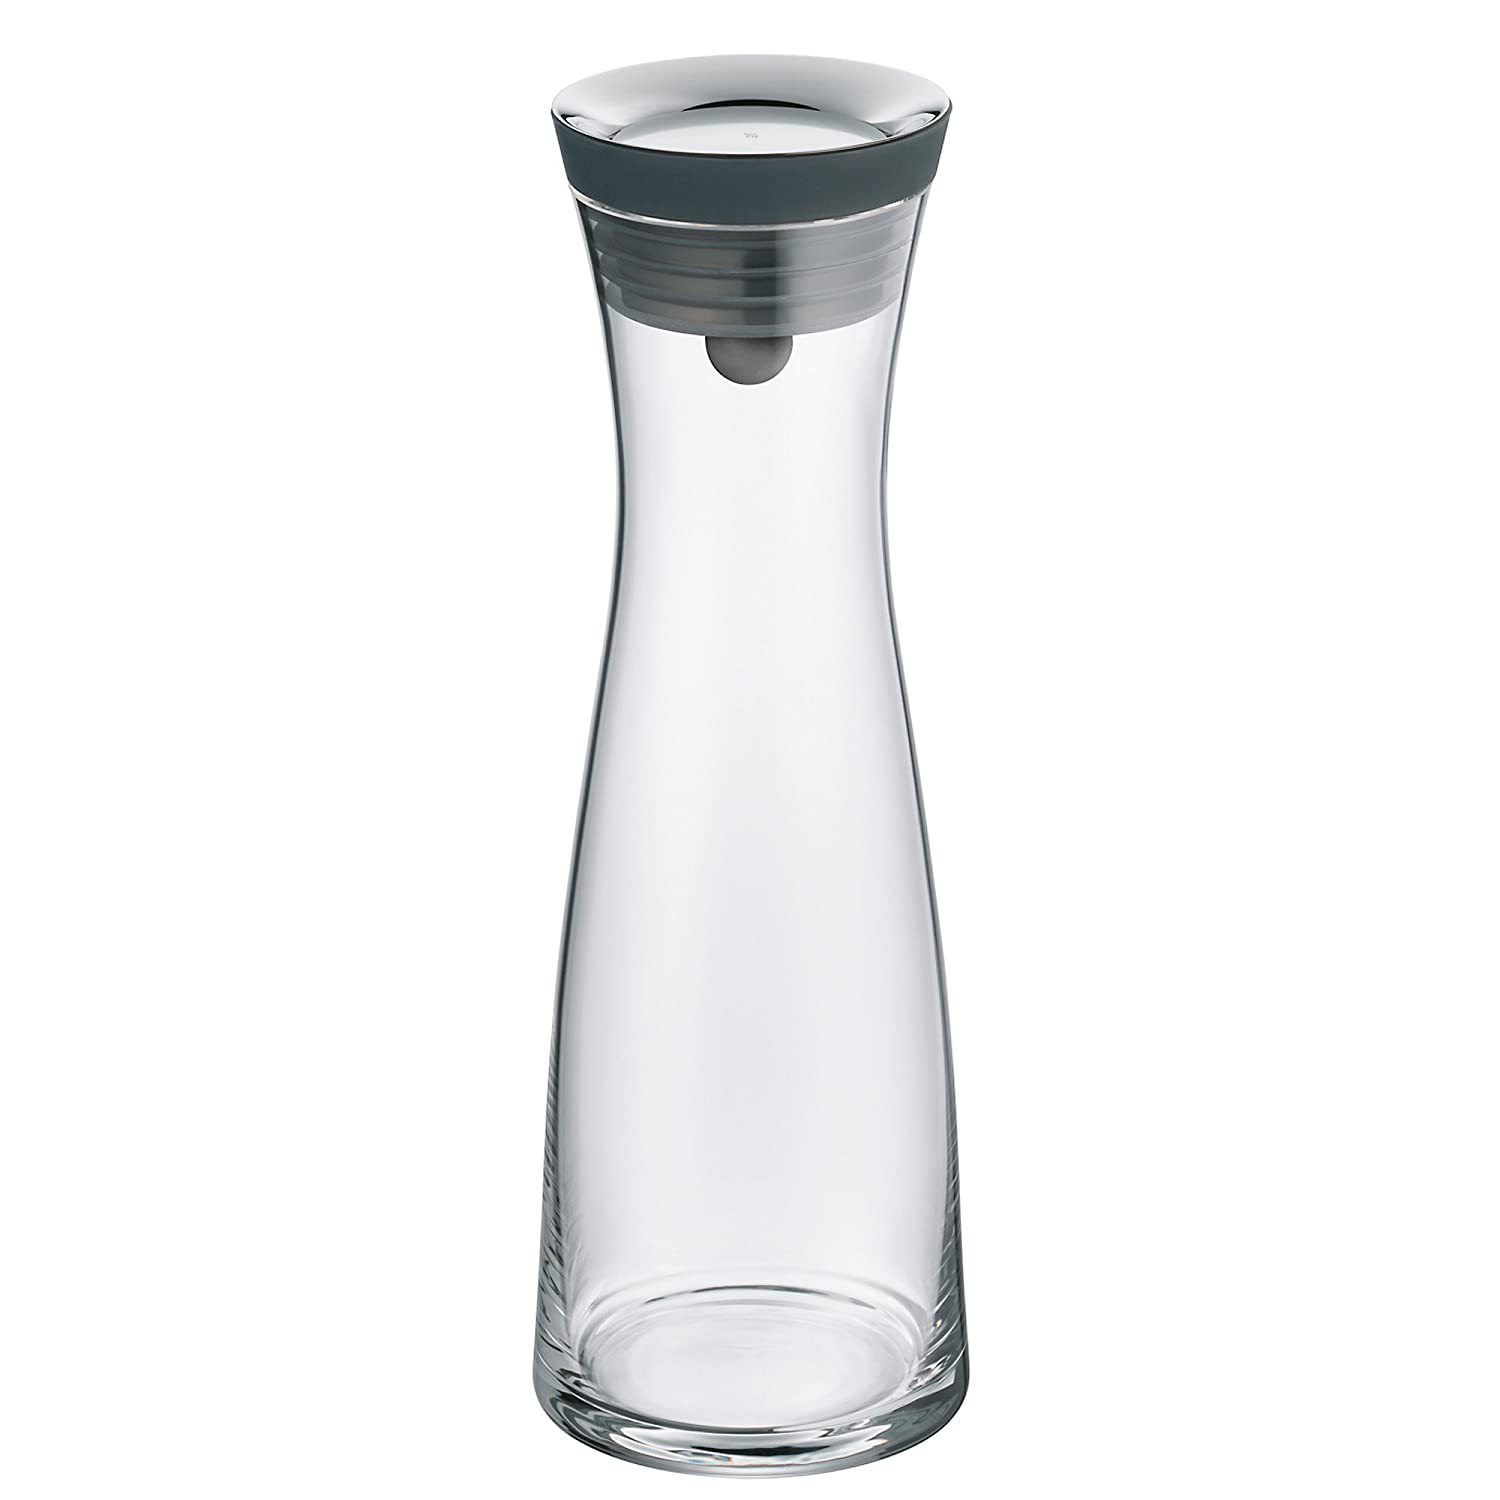 WMF Basic Black Water Carafe, 1-Liter 3201000189